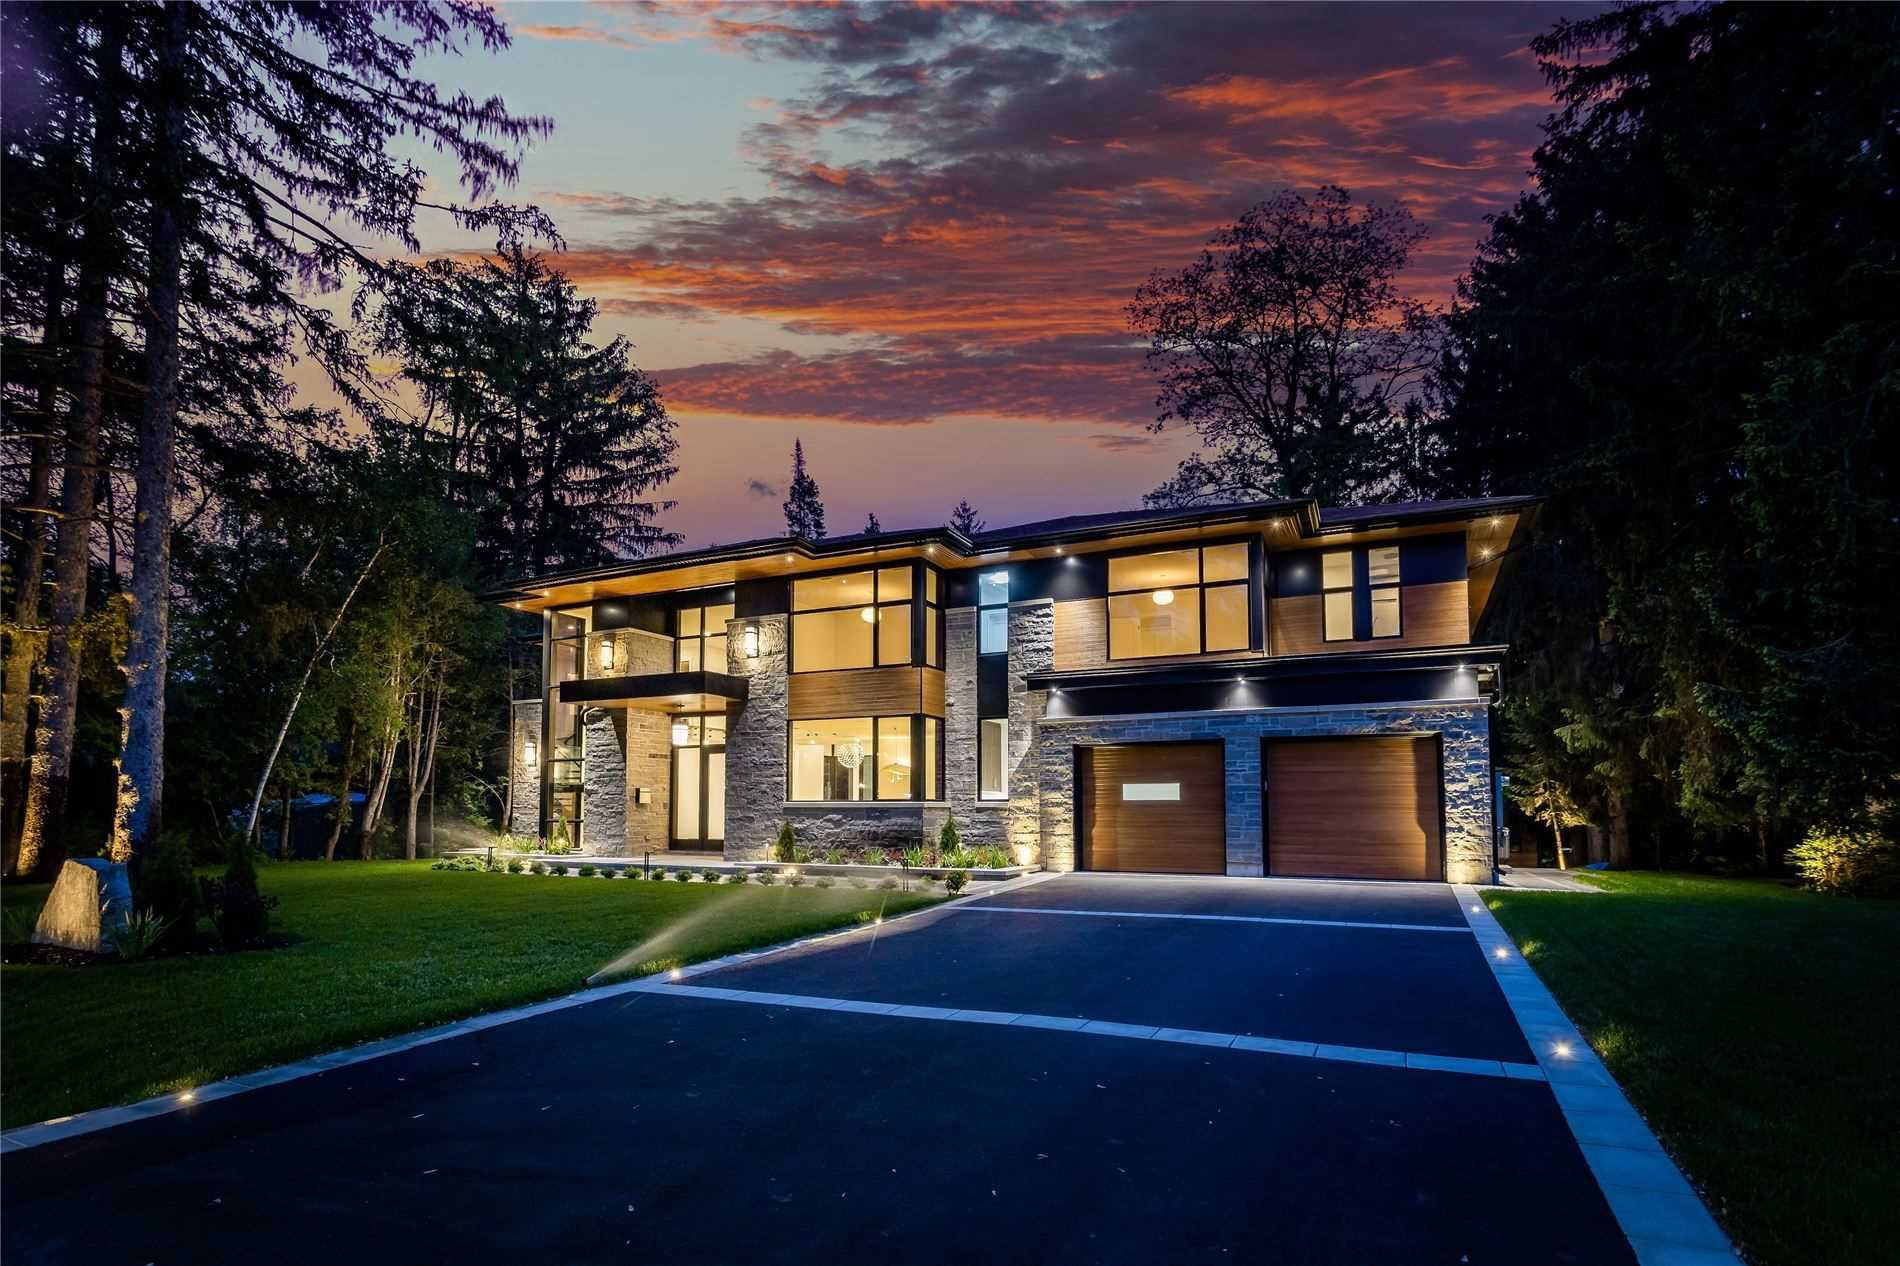 1384 Crescent Rd, Mississauga, ON L5H1P6 - MLS#: W5256748